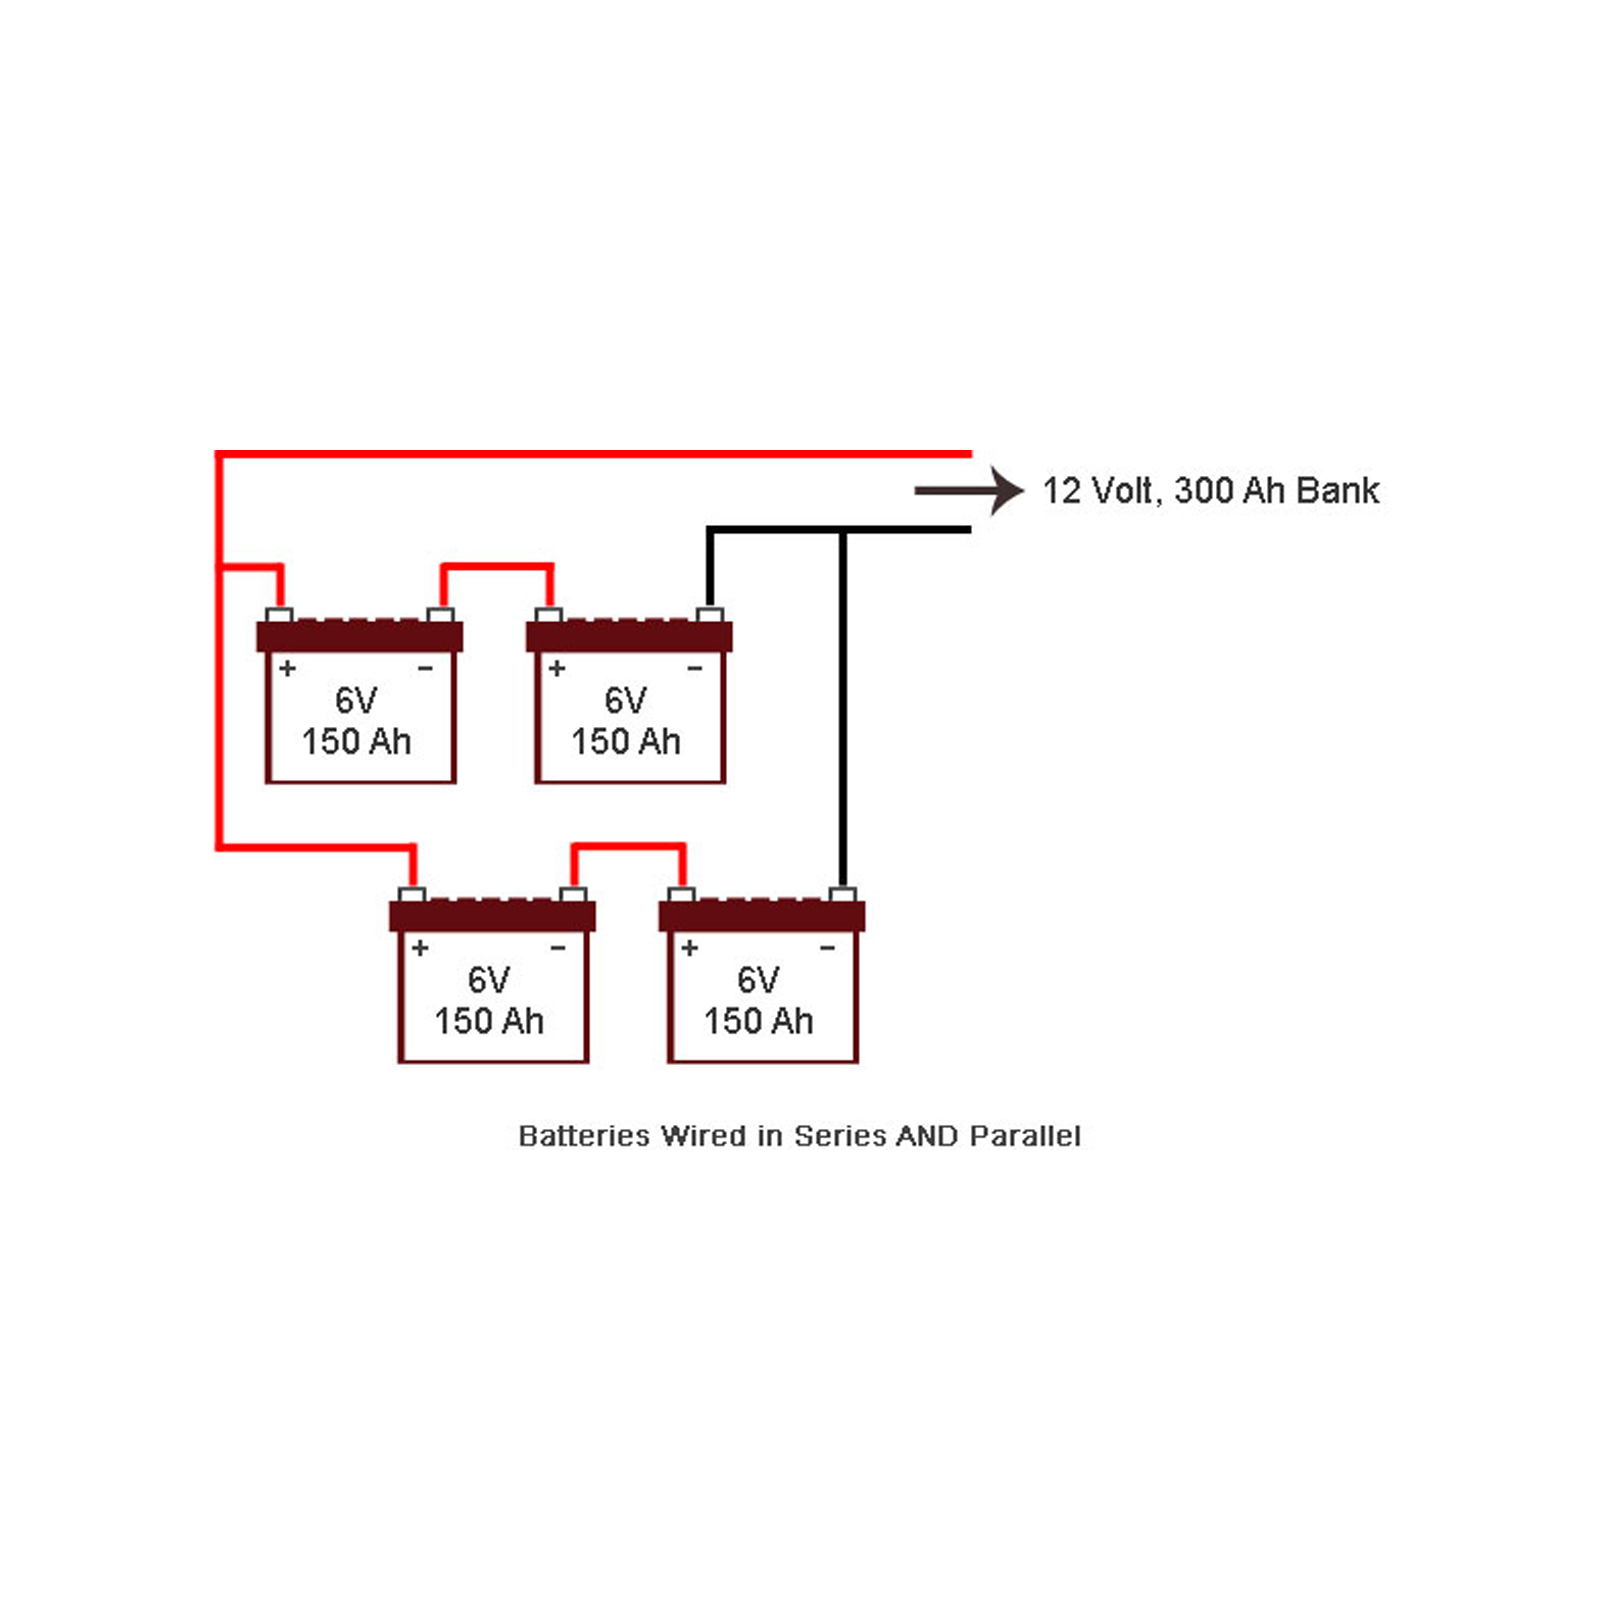 Series Wiring Diagram : Dc wiring series parallel free engine image for user